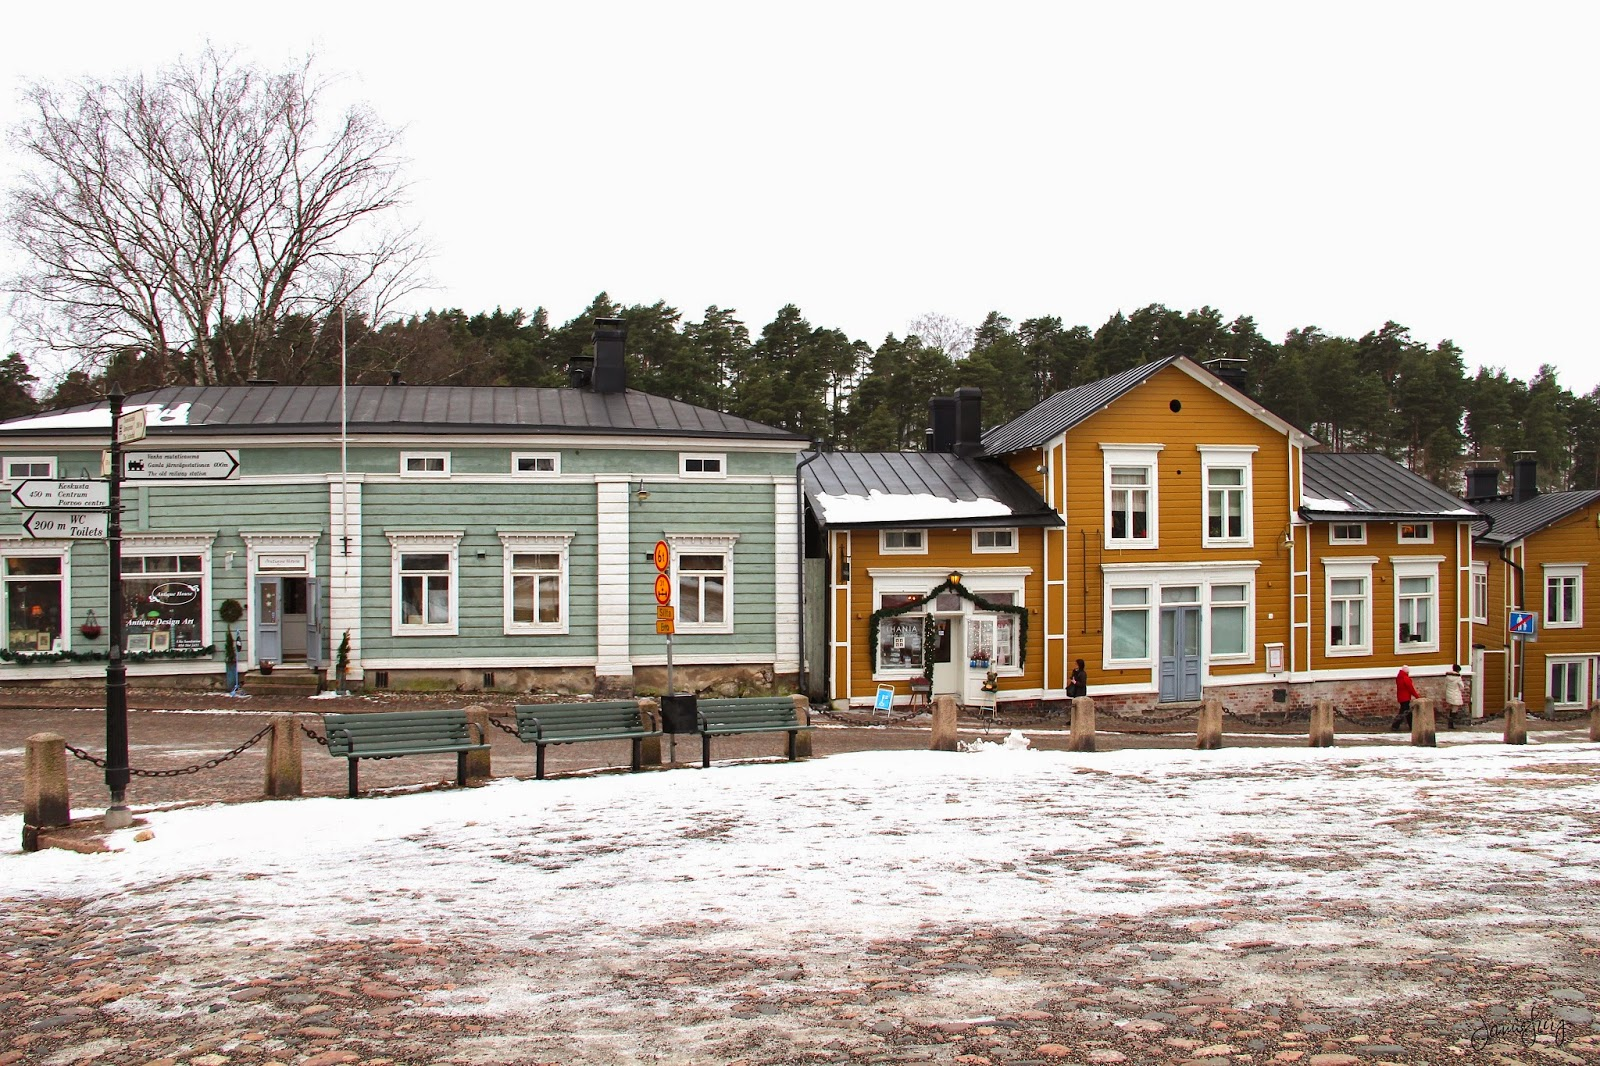 Old Town of Porvoo, Finland